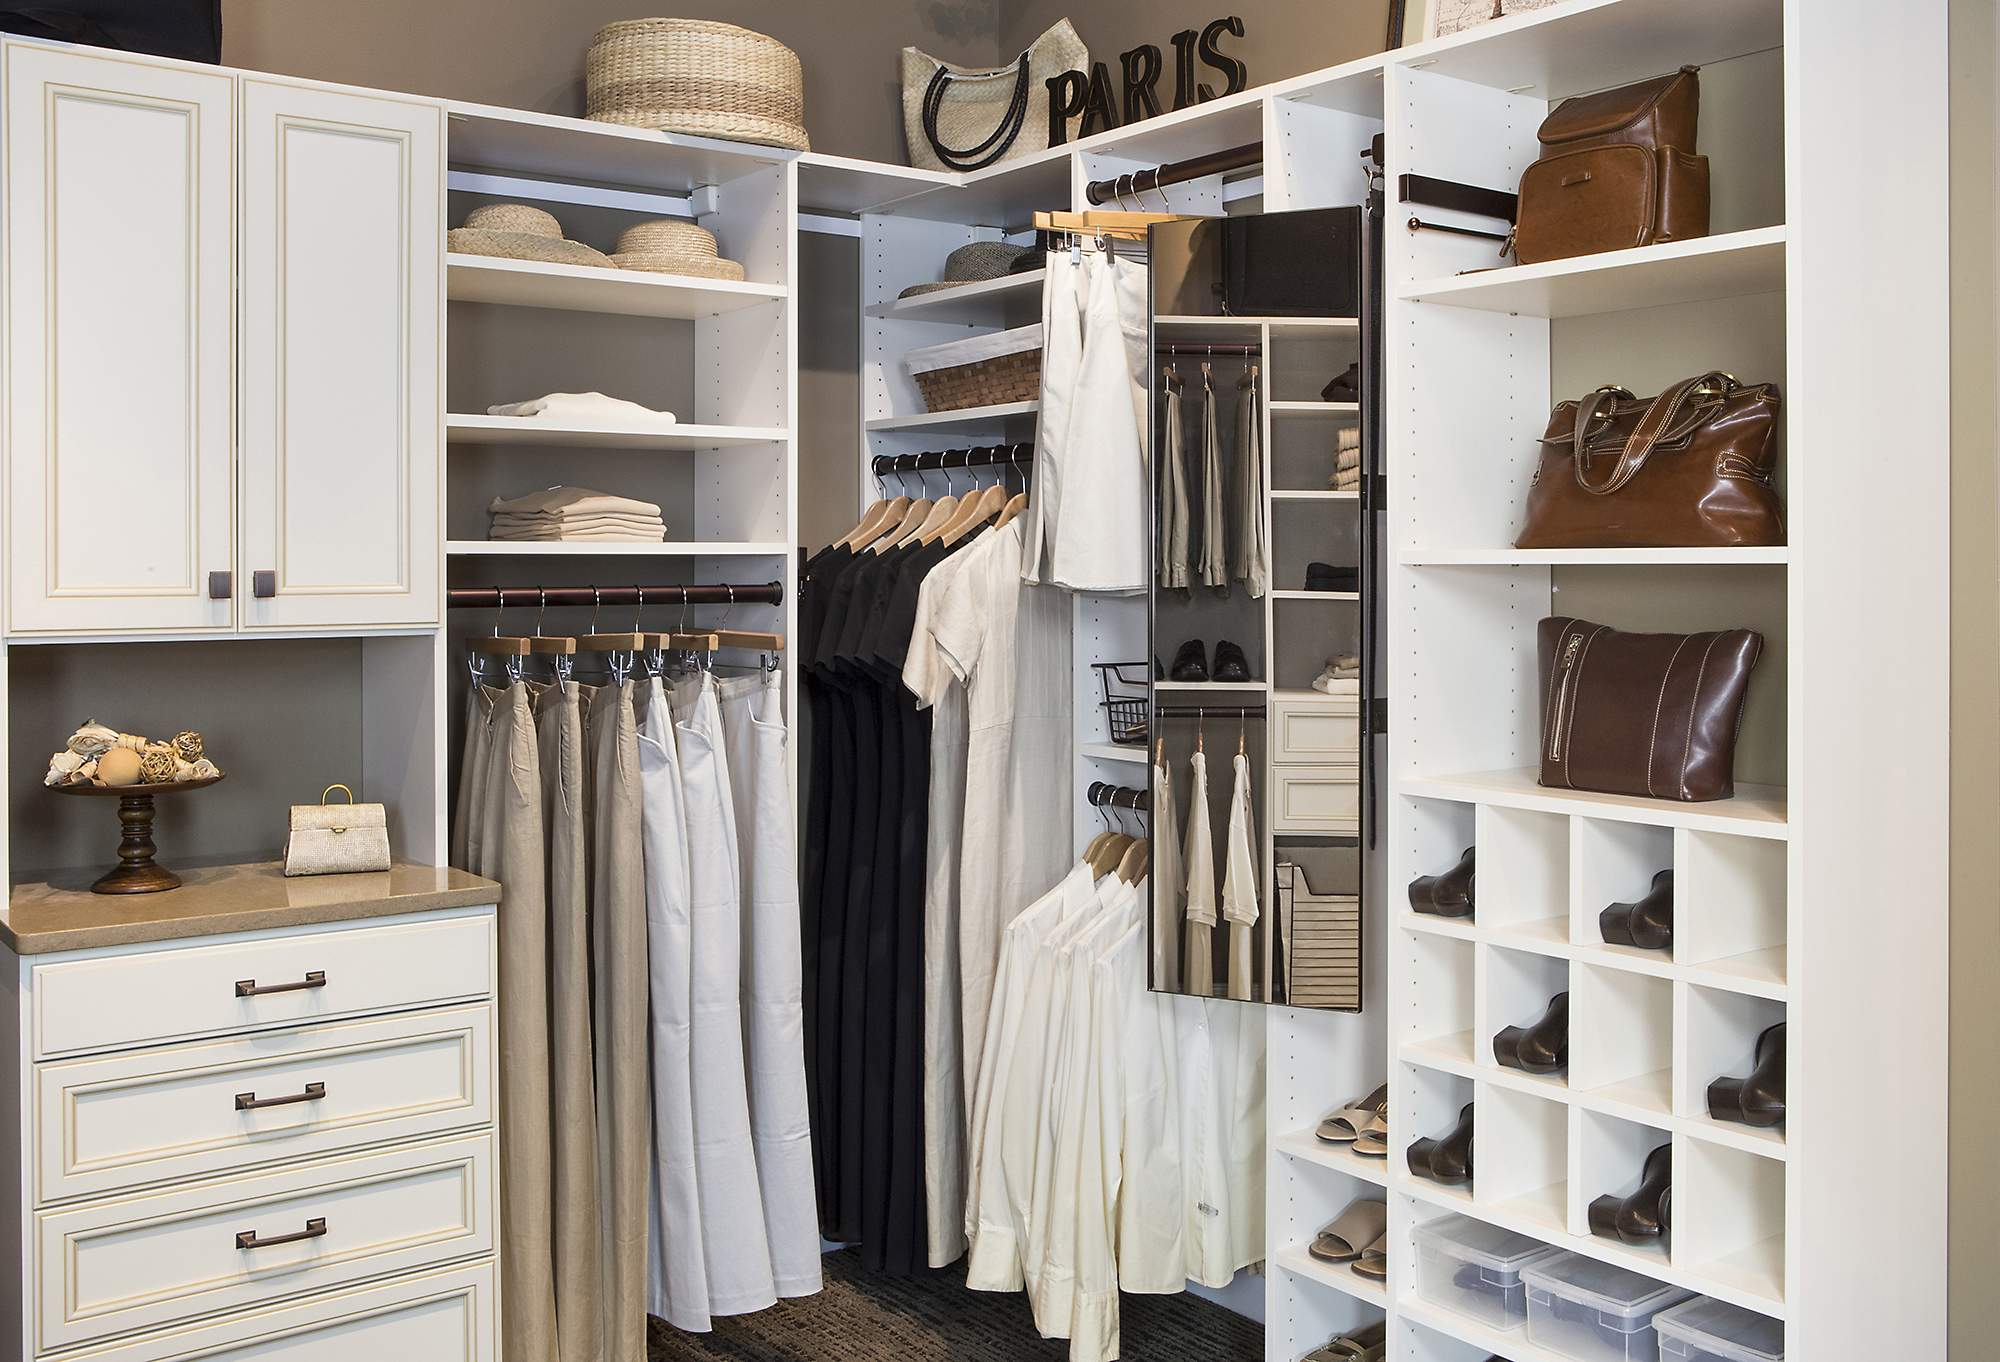 full alternatives build open bedroom built sliding options white mirror door cheap without wardrobe barn doors wood ideas inserts organizers closet your own interior in cabinets solutions small of size